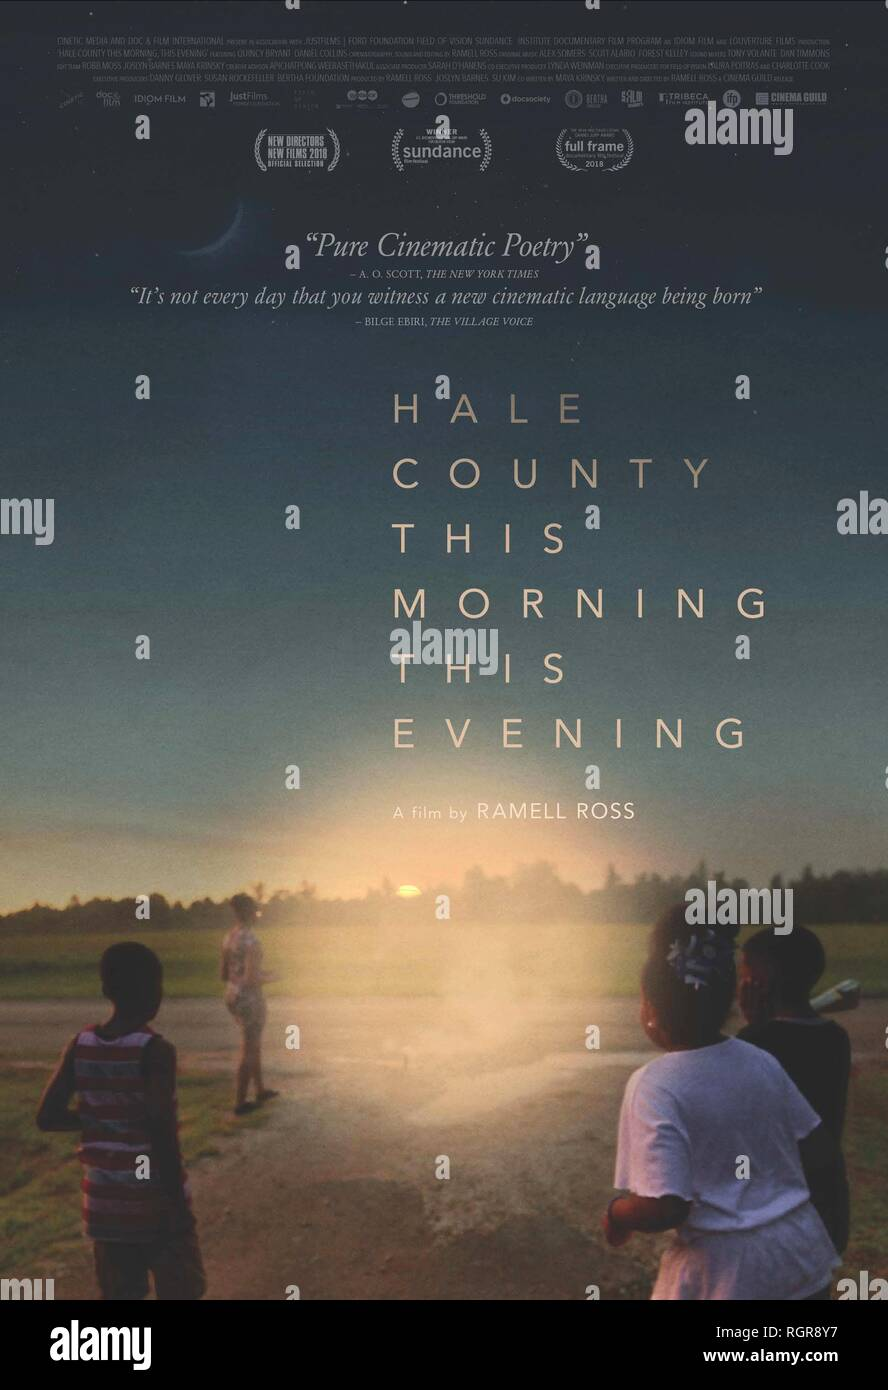 MOVIE POSTER HALE COUNTY THIS MORNING THIS EVENING (2018